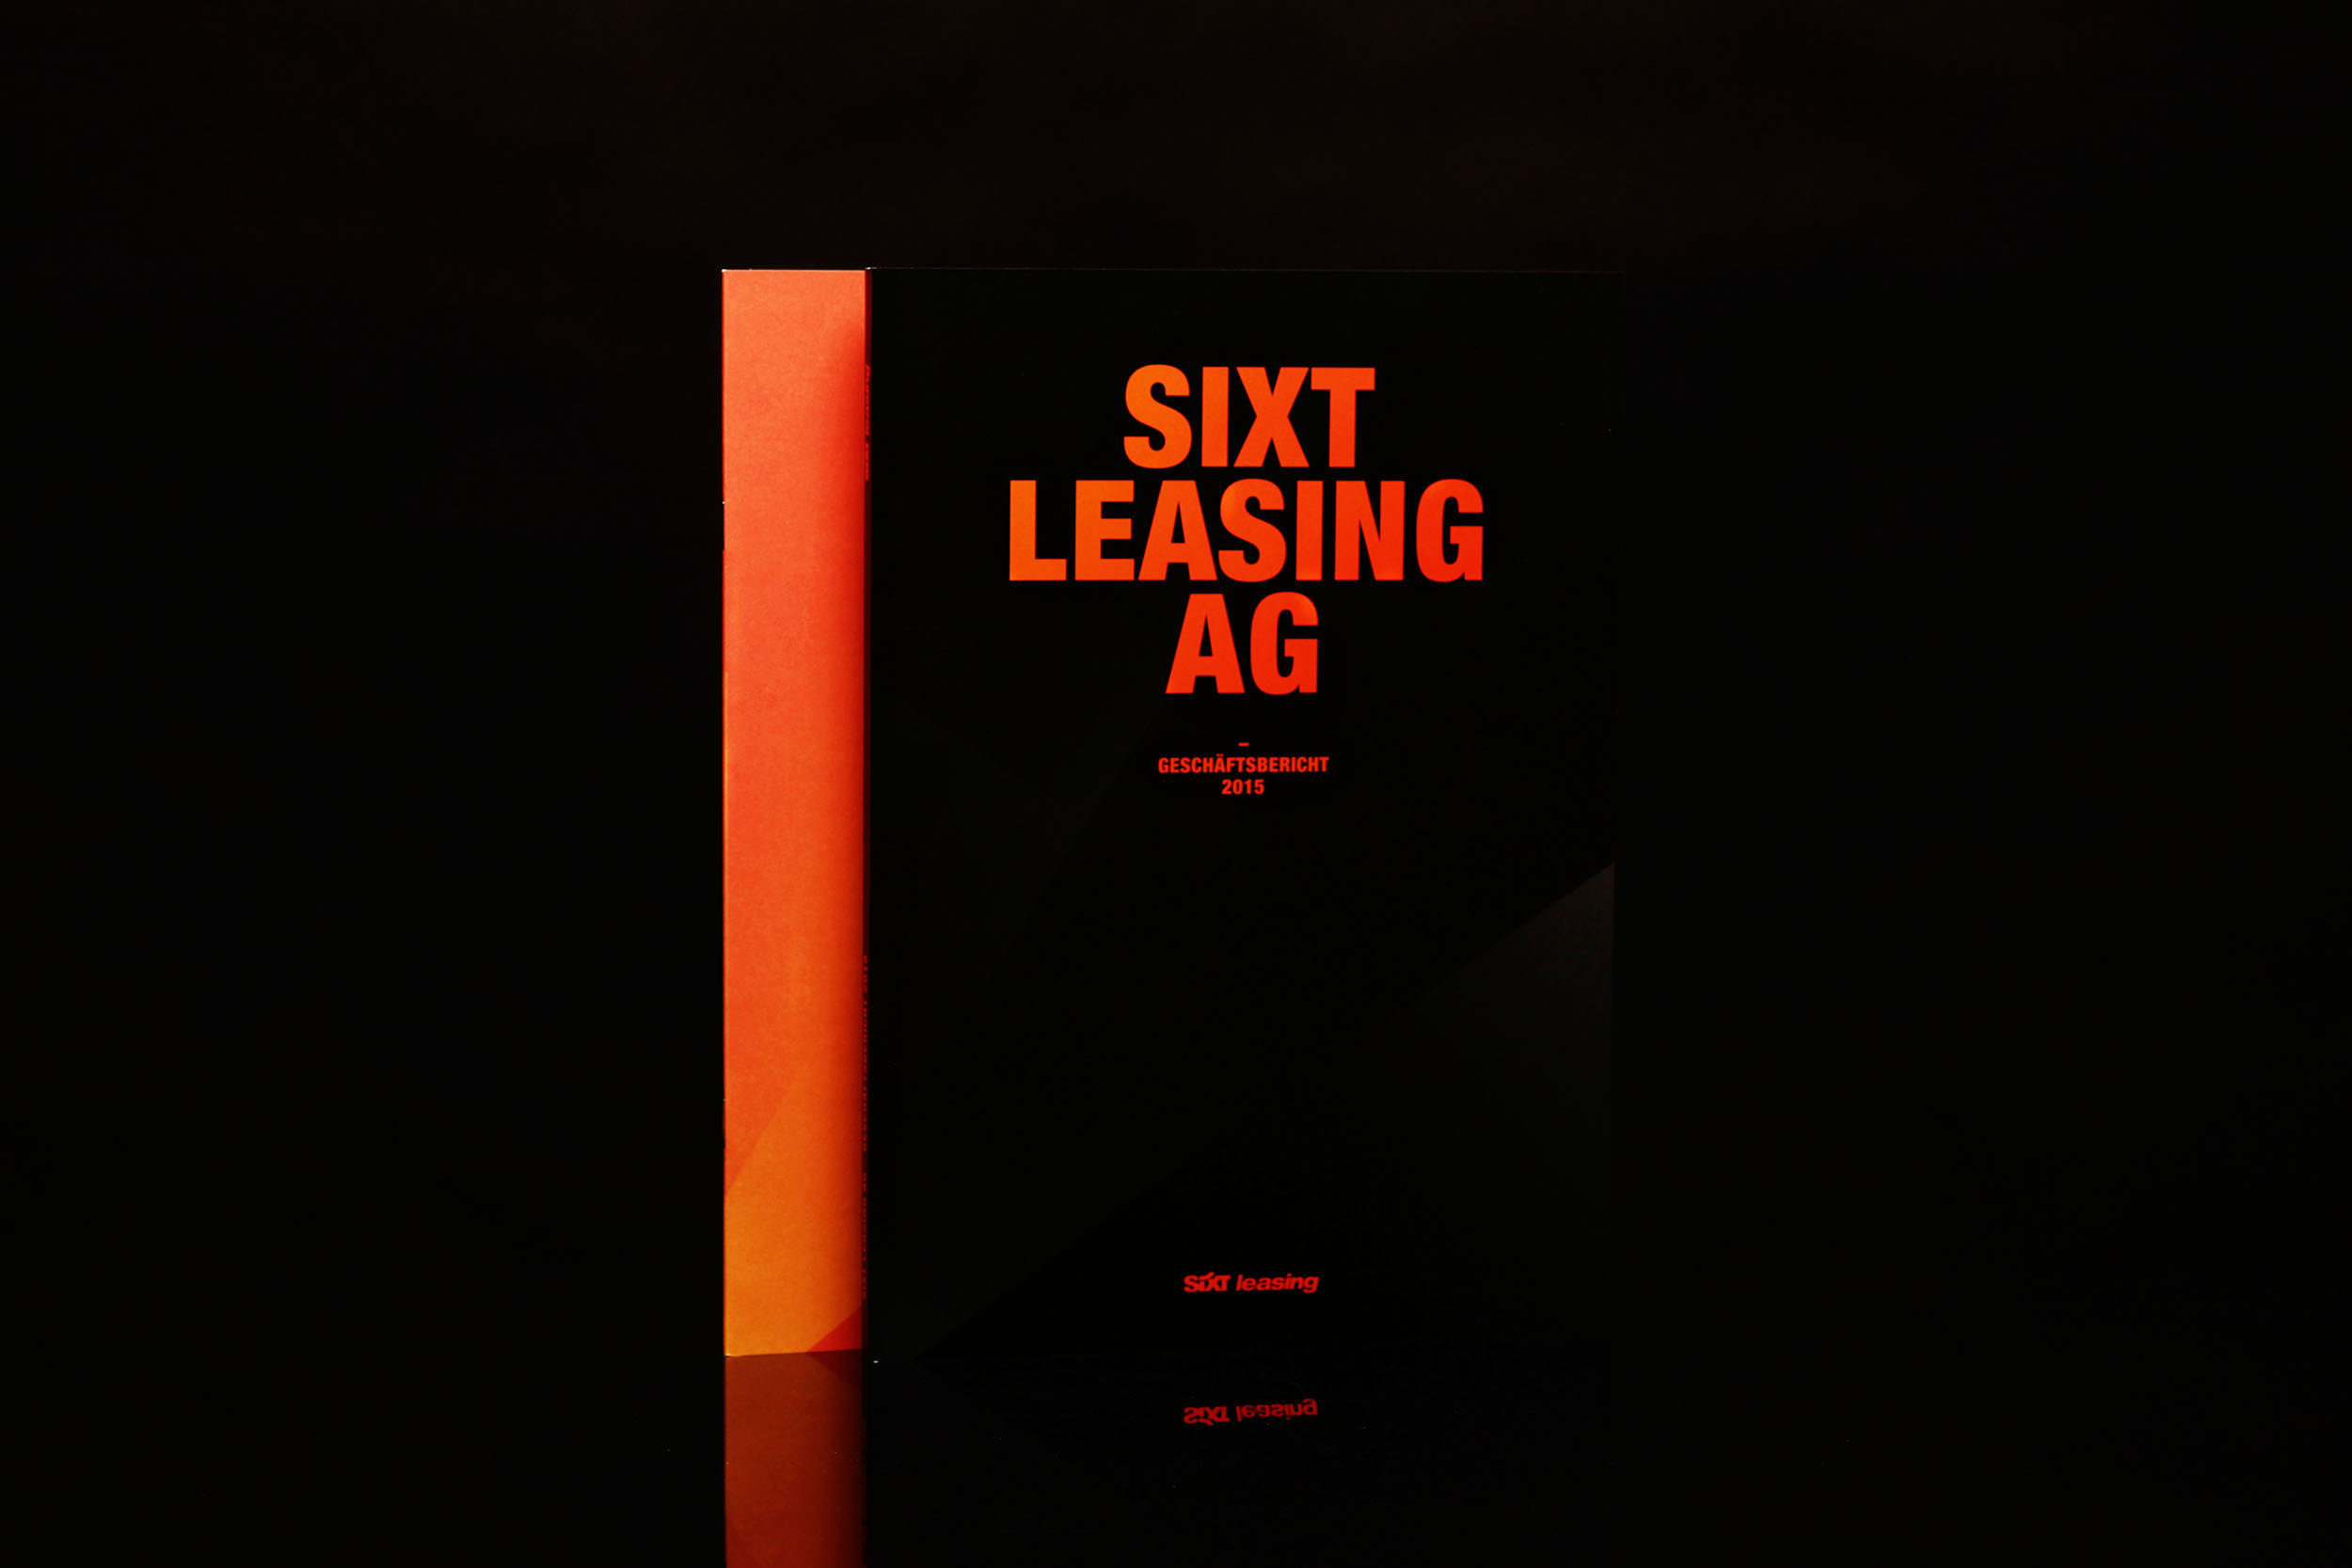 sixt leasing se annual reports milch honig designkultur m nchen. Black Bedroom Furniture Sets. Home Design Ideas